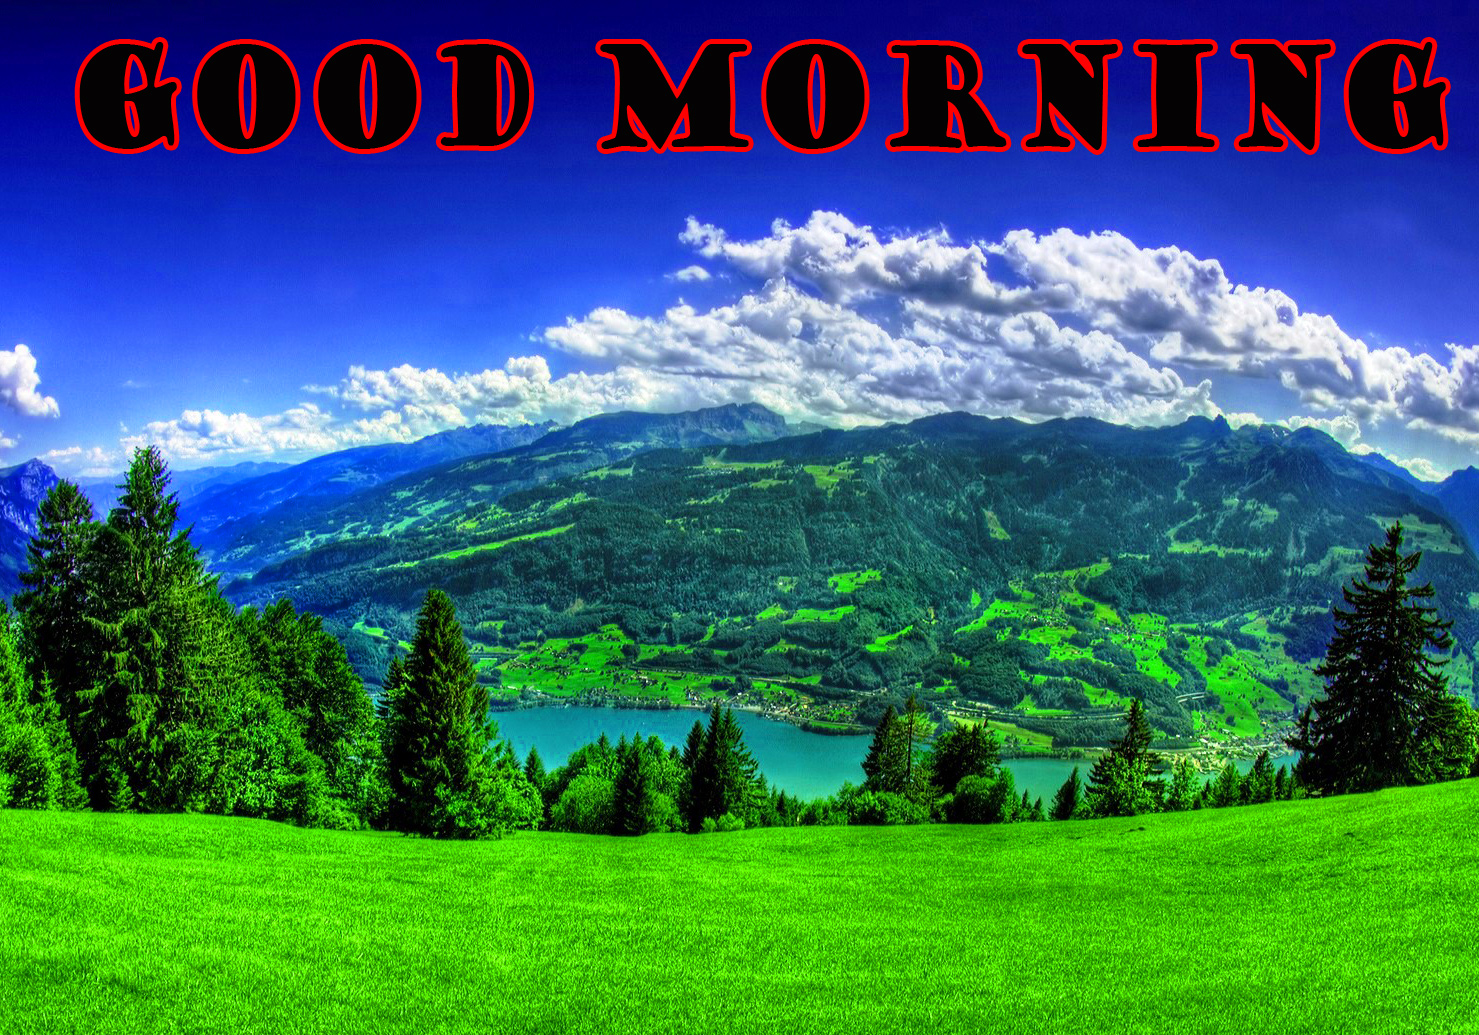 गुड मॉर्निंग New Wonderful Good Morning Pictures Images Photo Free Download